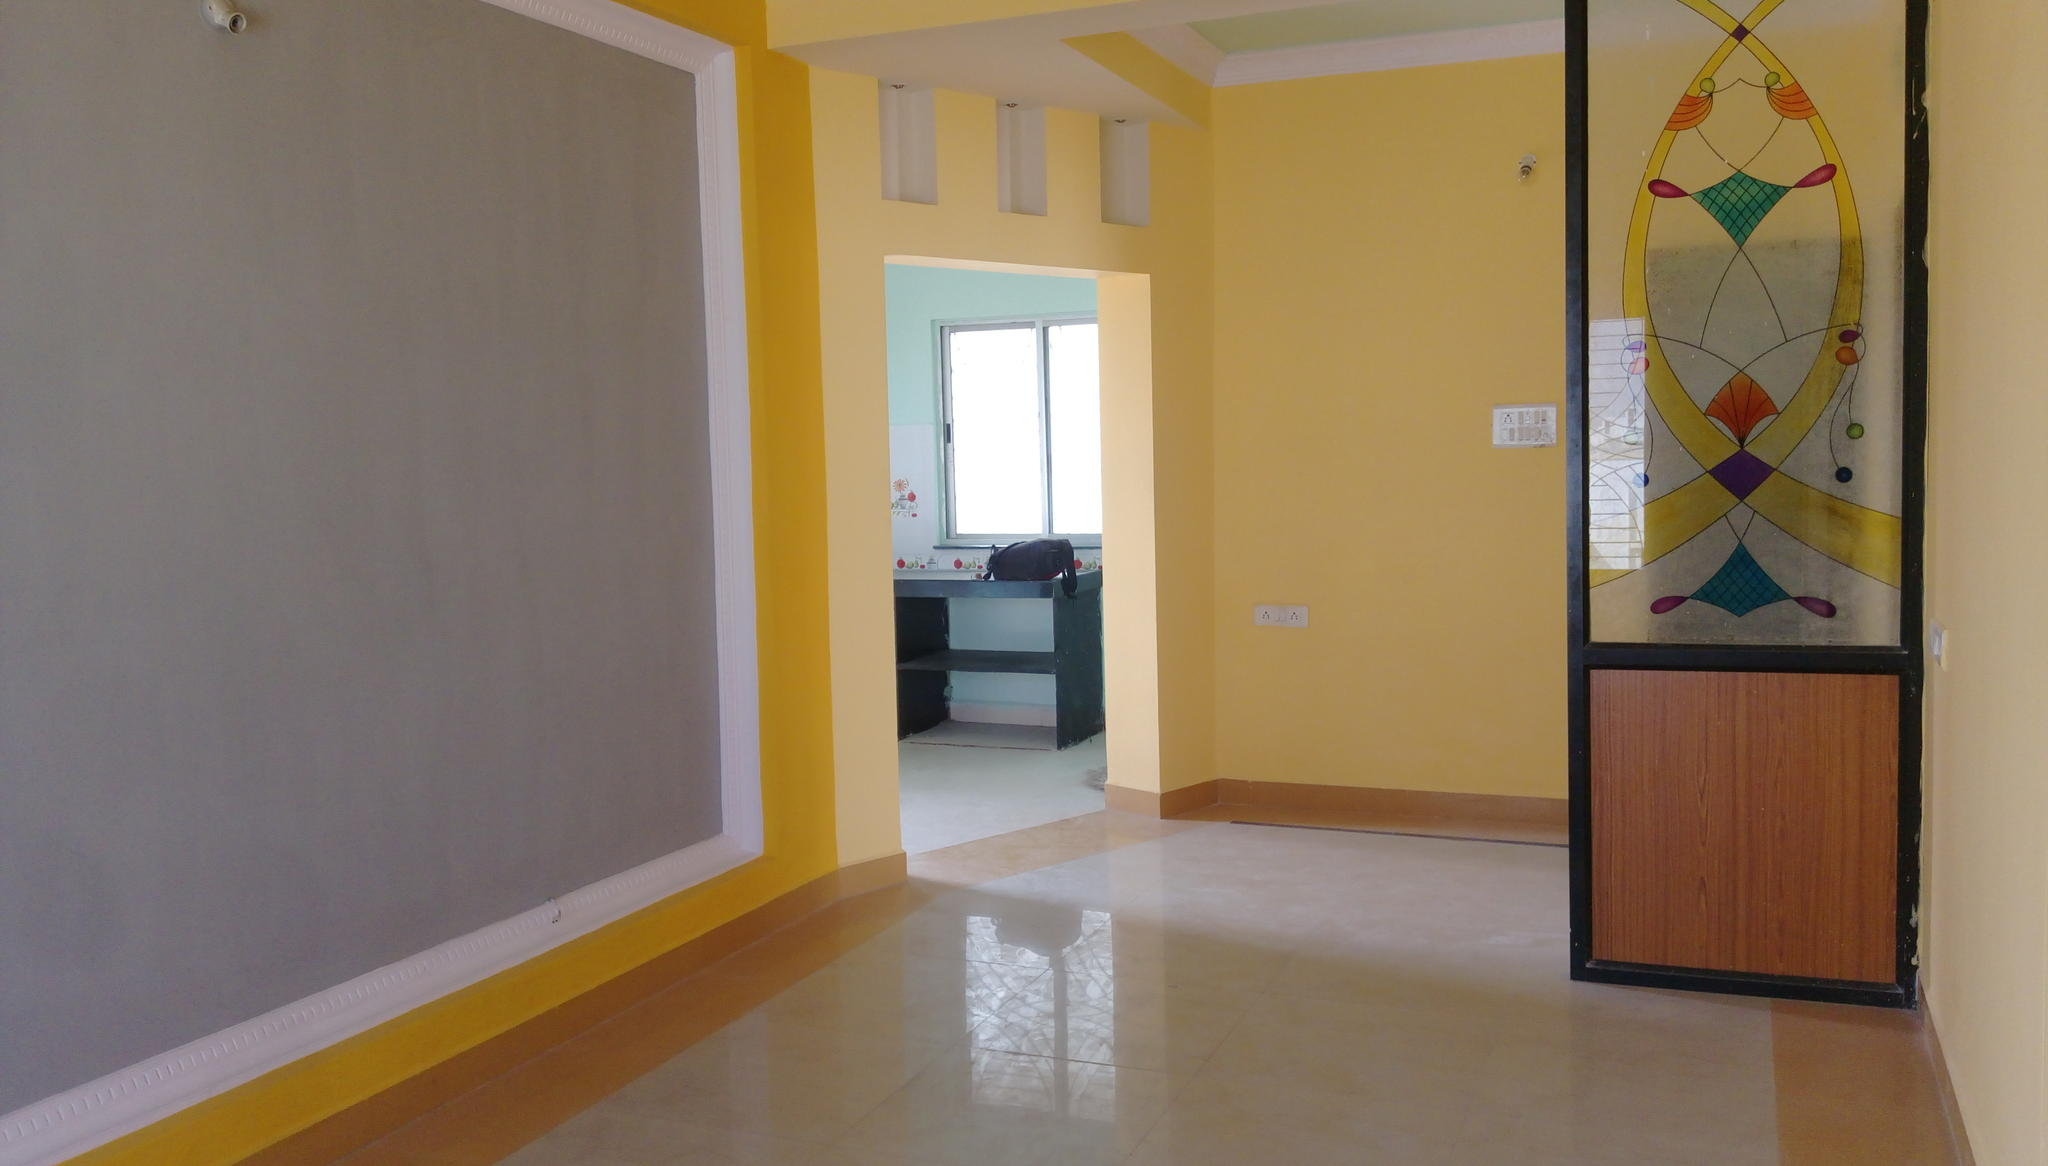 New 4bhk independent bunglow available for rent 25000 for rent at manish nagar